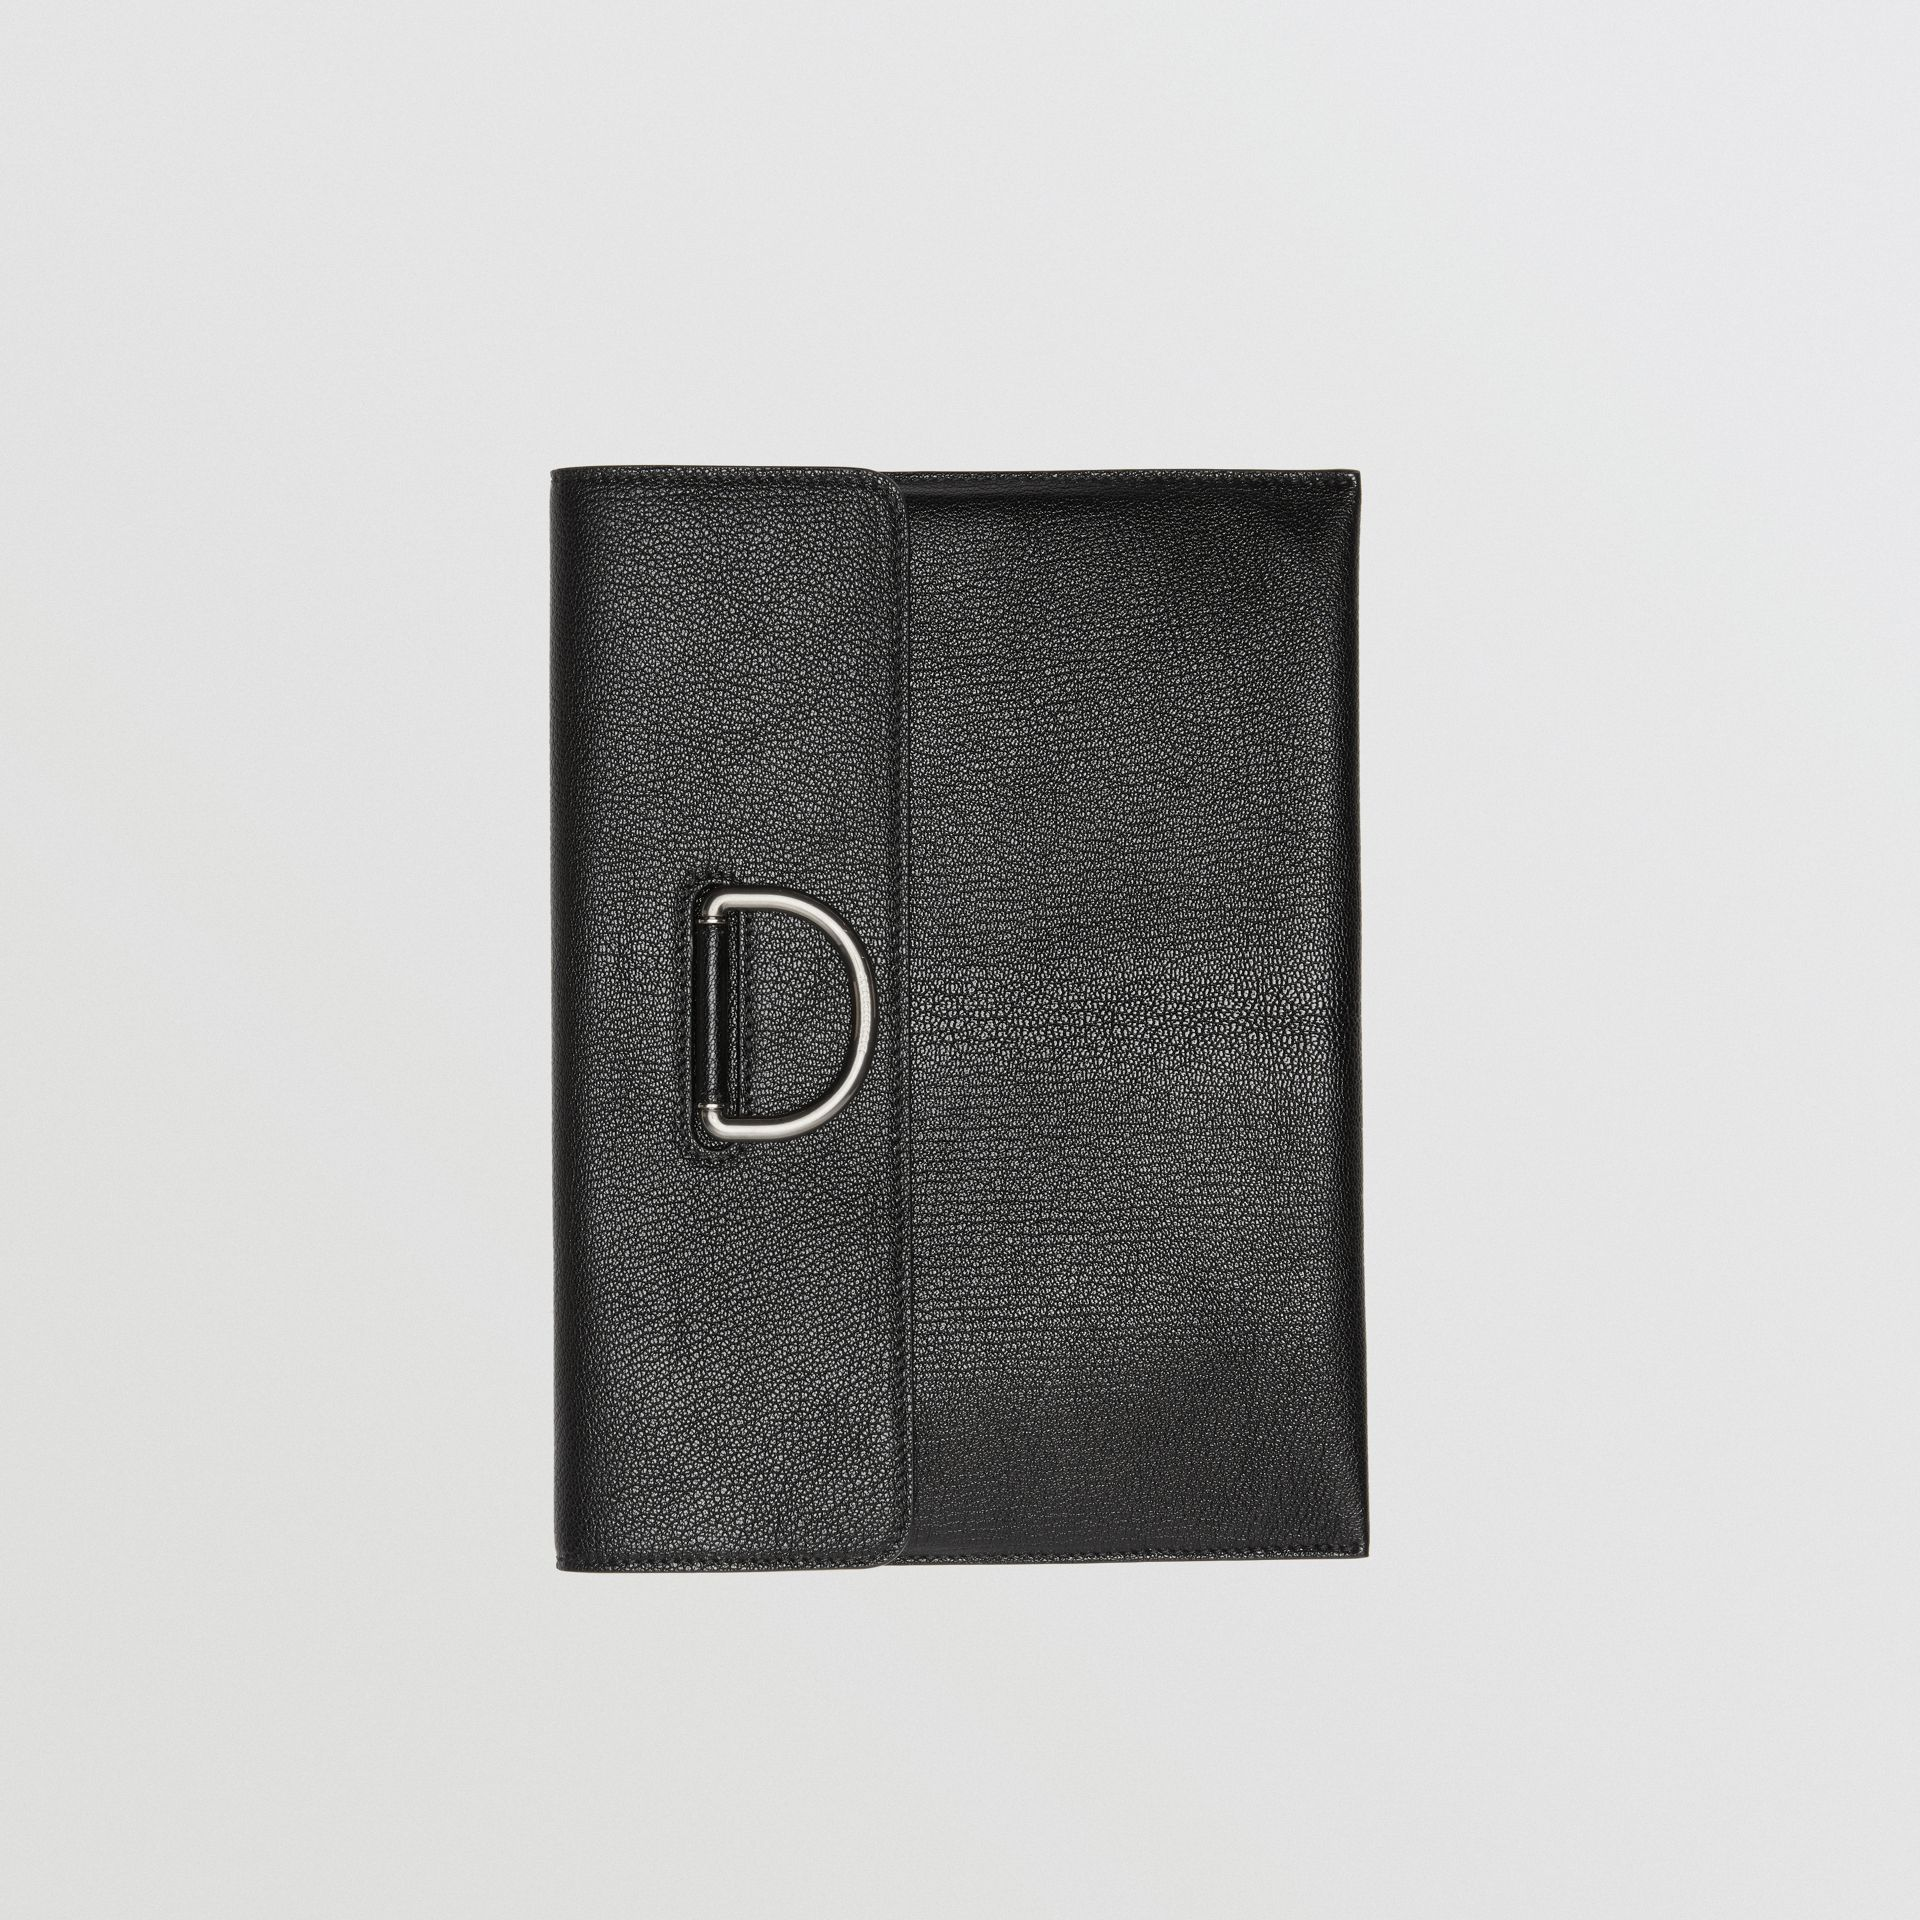 D-ring Leather Pouch in Black - Women | Burberry Australia - gallery image 2